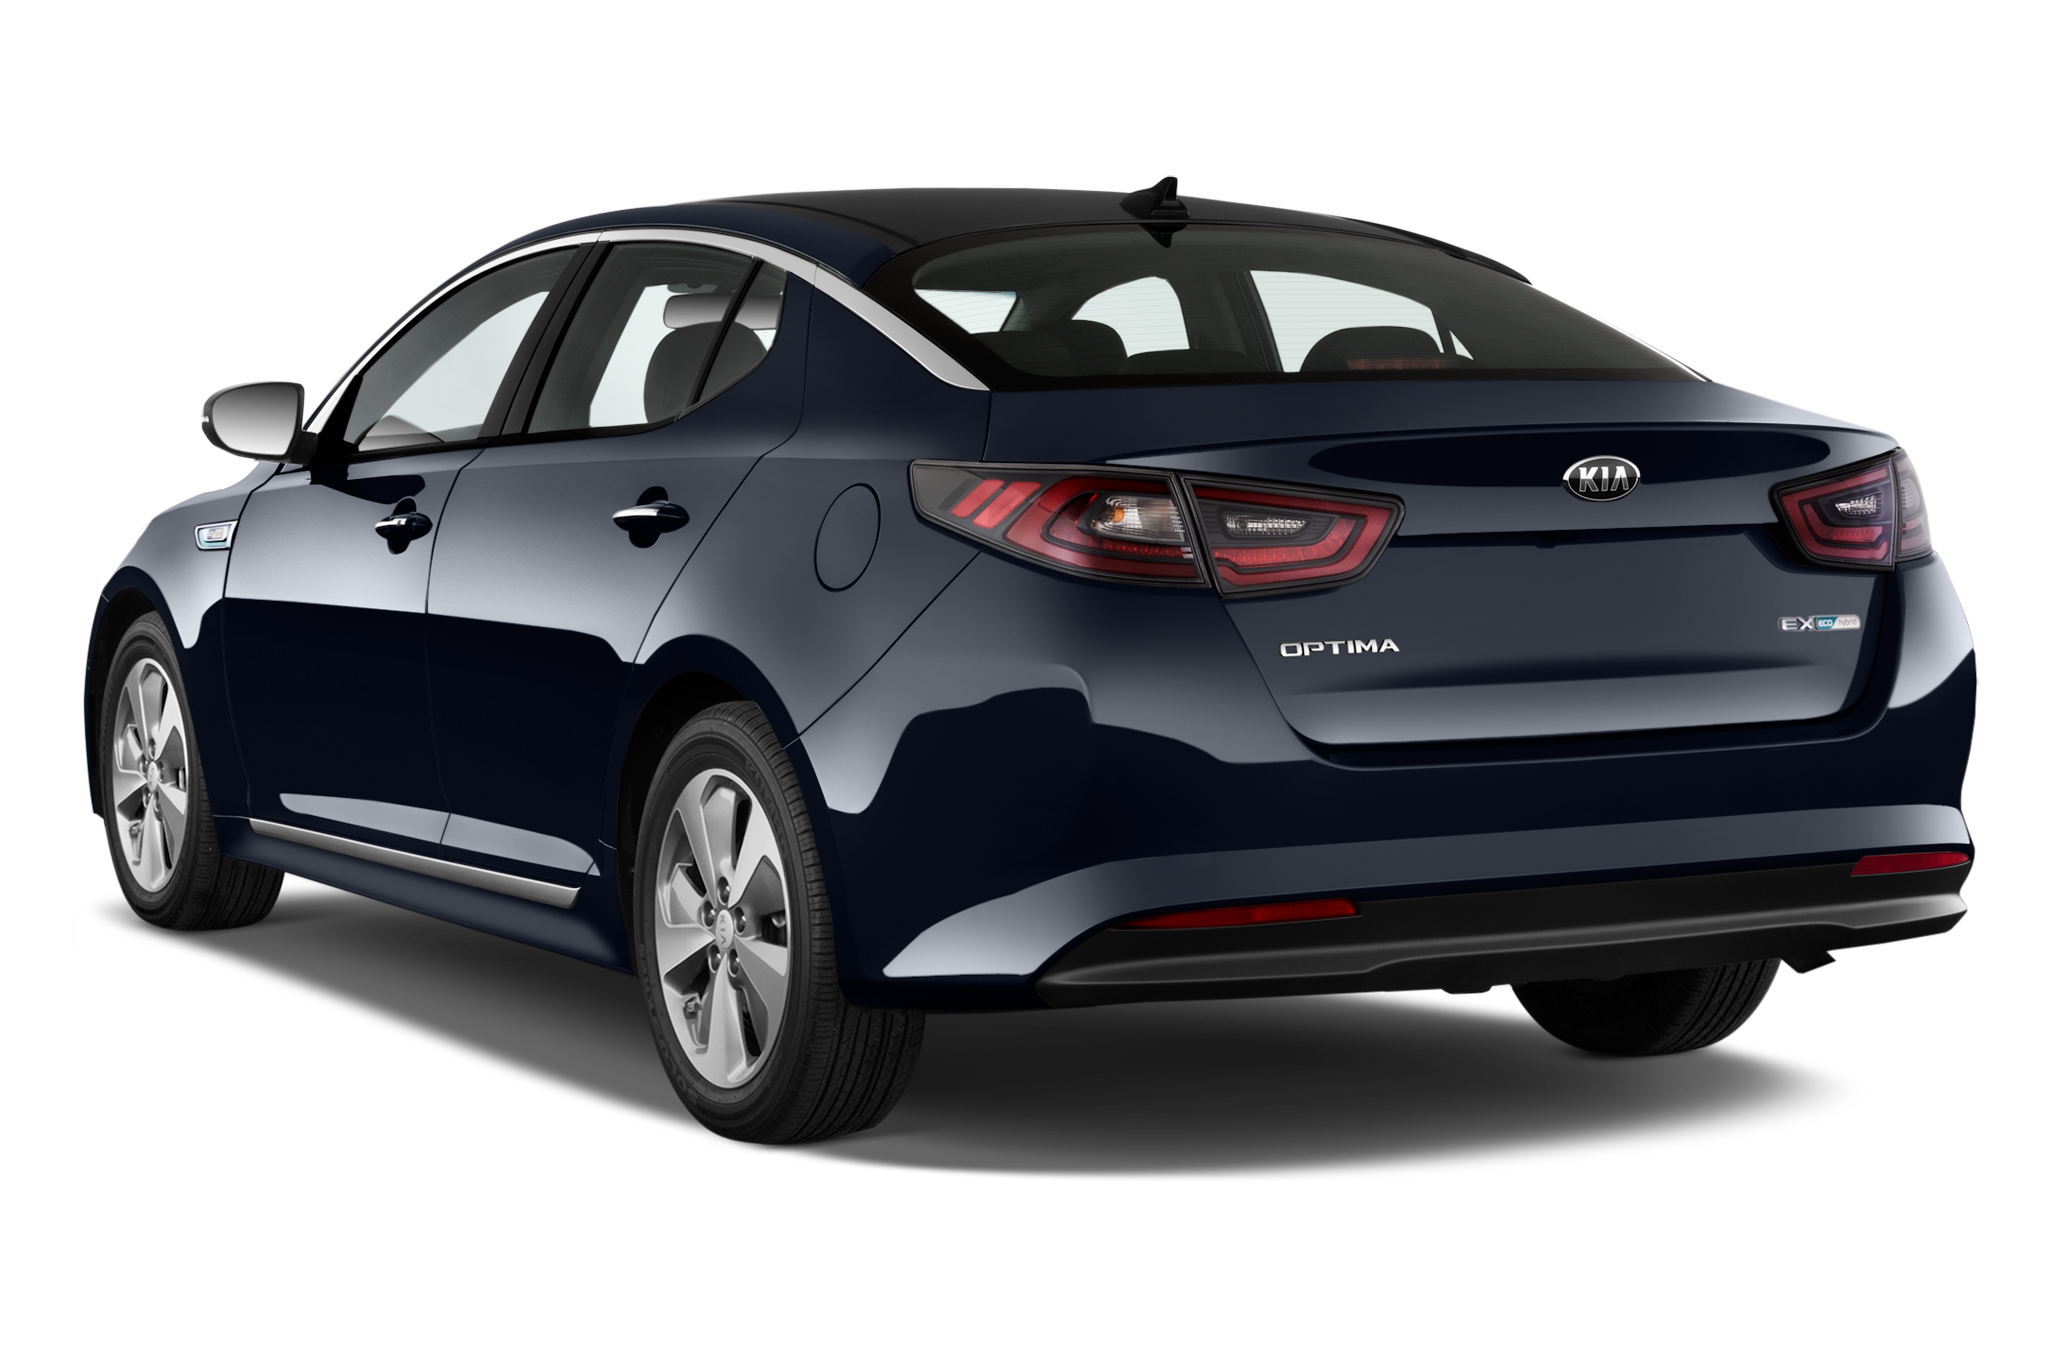 2014 Kia Optima SX Turbo Review - Automobile Magazine